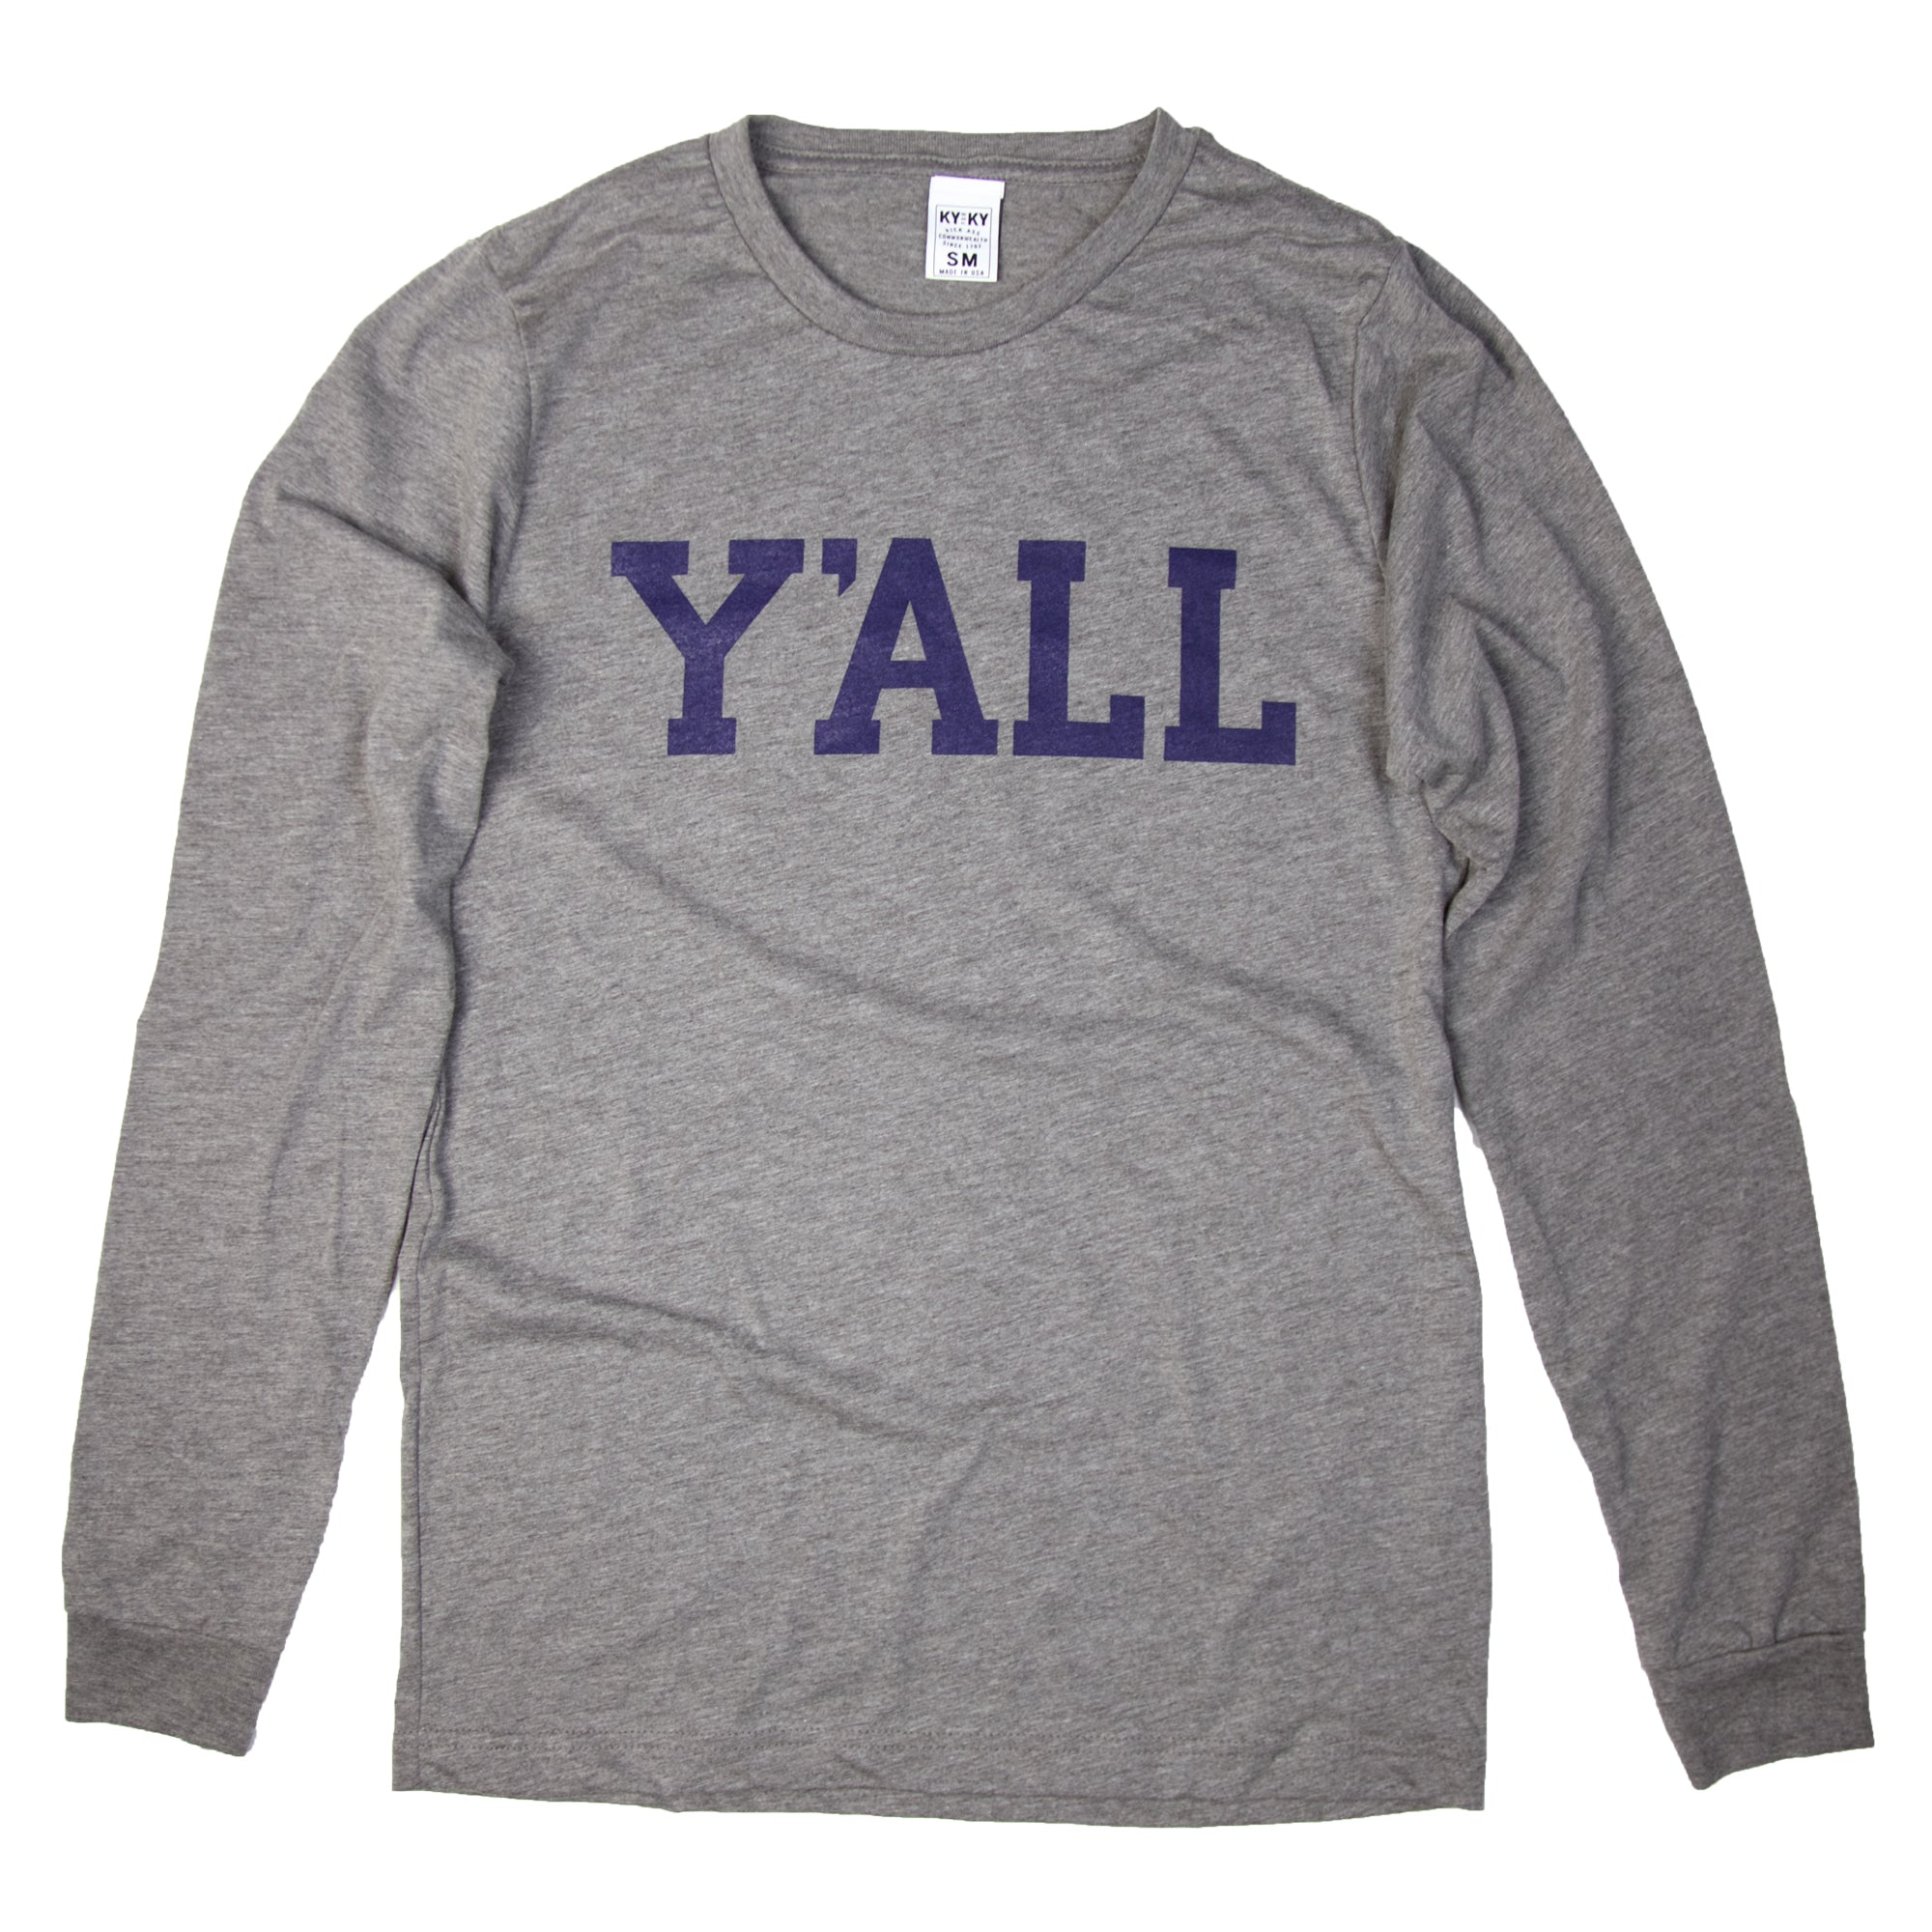 Long Sleeve Y'ALL Shirt (Grey)-Long Sleeve Shirt-KY for KY Store